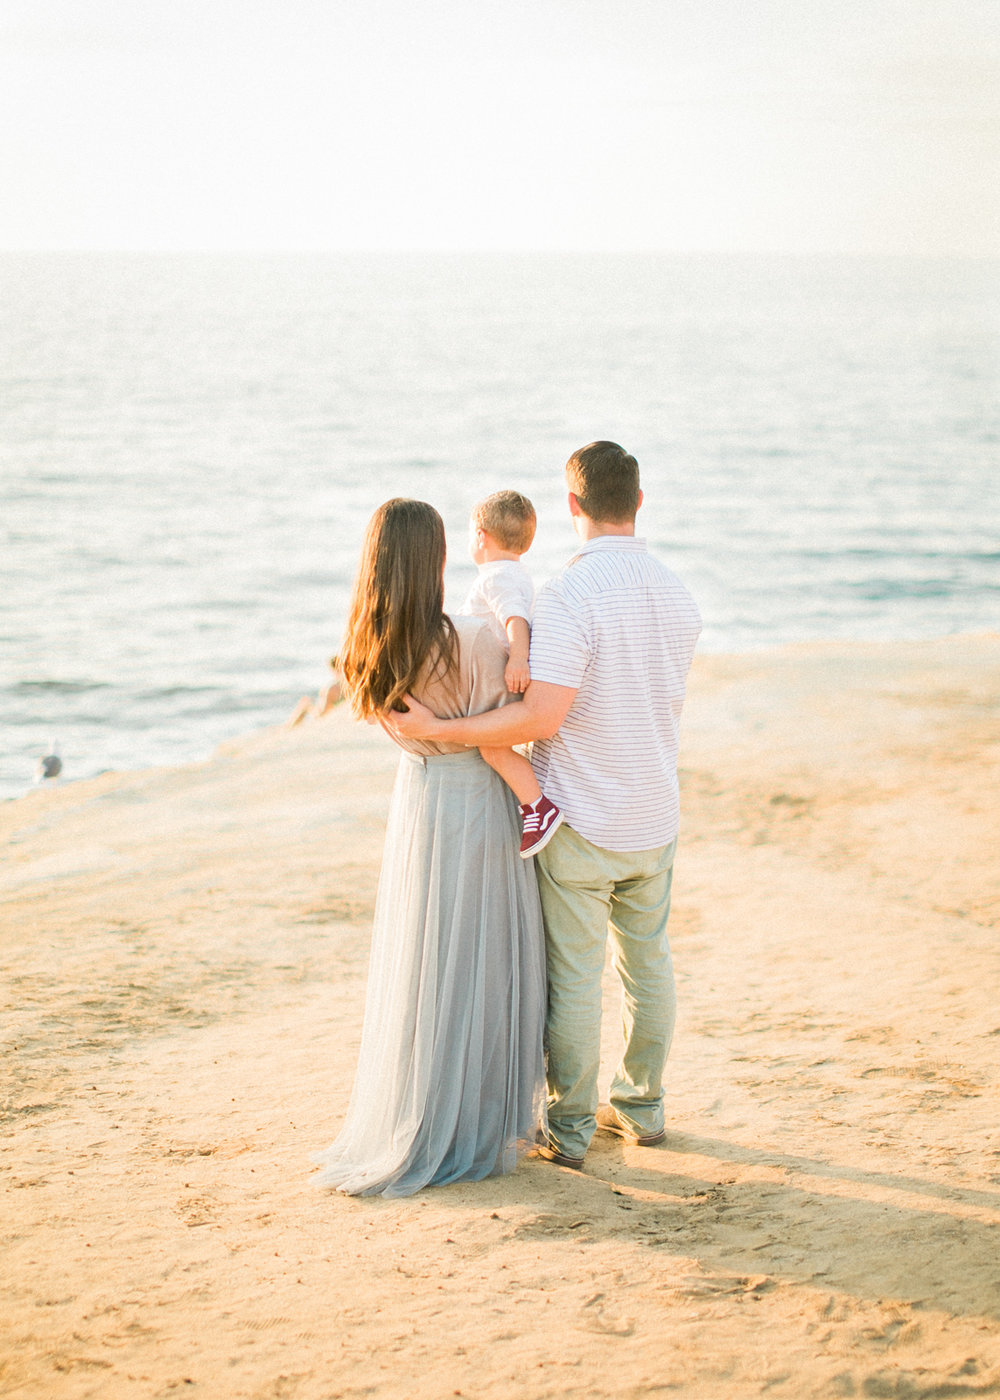 fine art film photography San Diego - lifestyle beach family photos